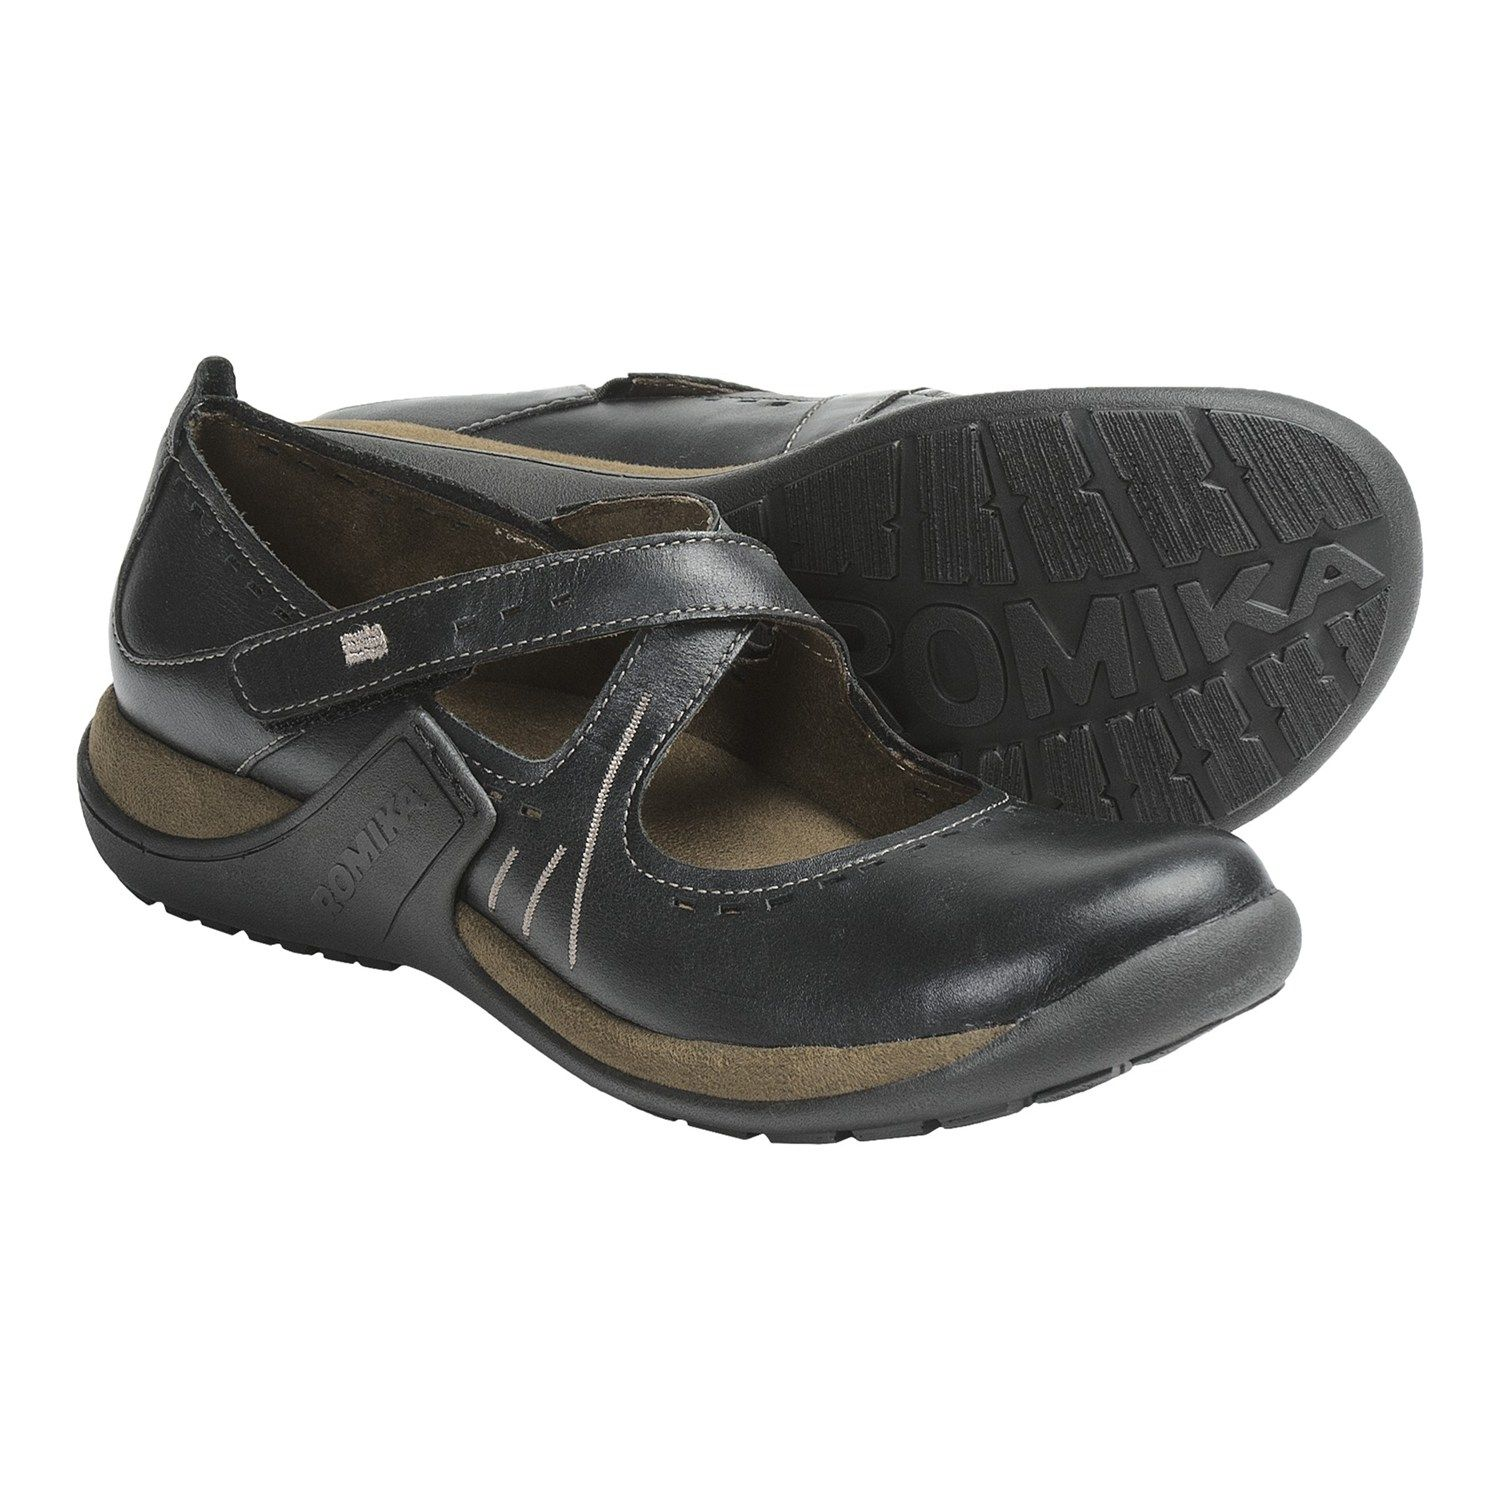 Imported From Abroad Dansko Clogs Size 40 9.5 10 Brown Sateen Slip On Comfort Nursing Attractive Designs; Clothing, Shoes & Accessories